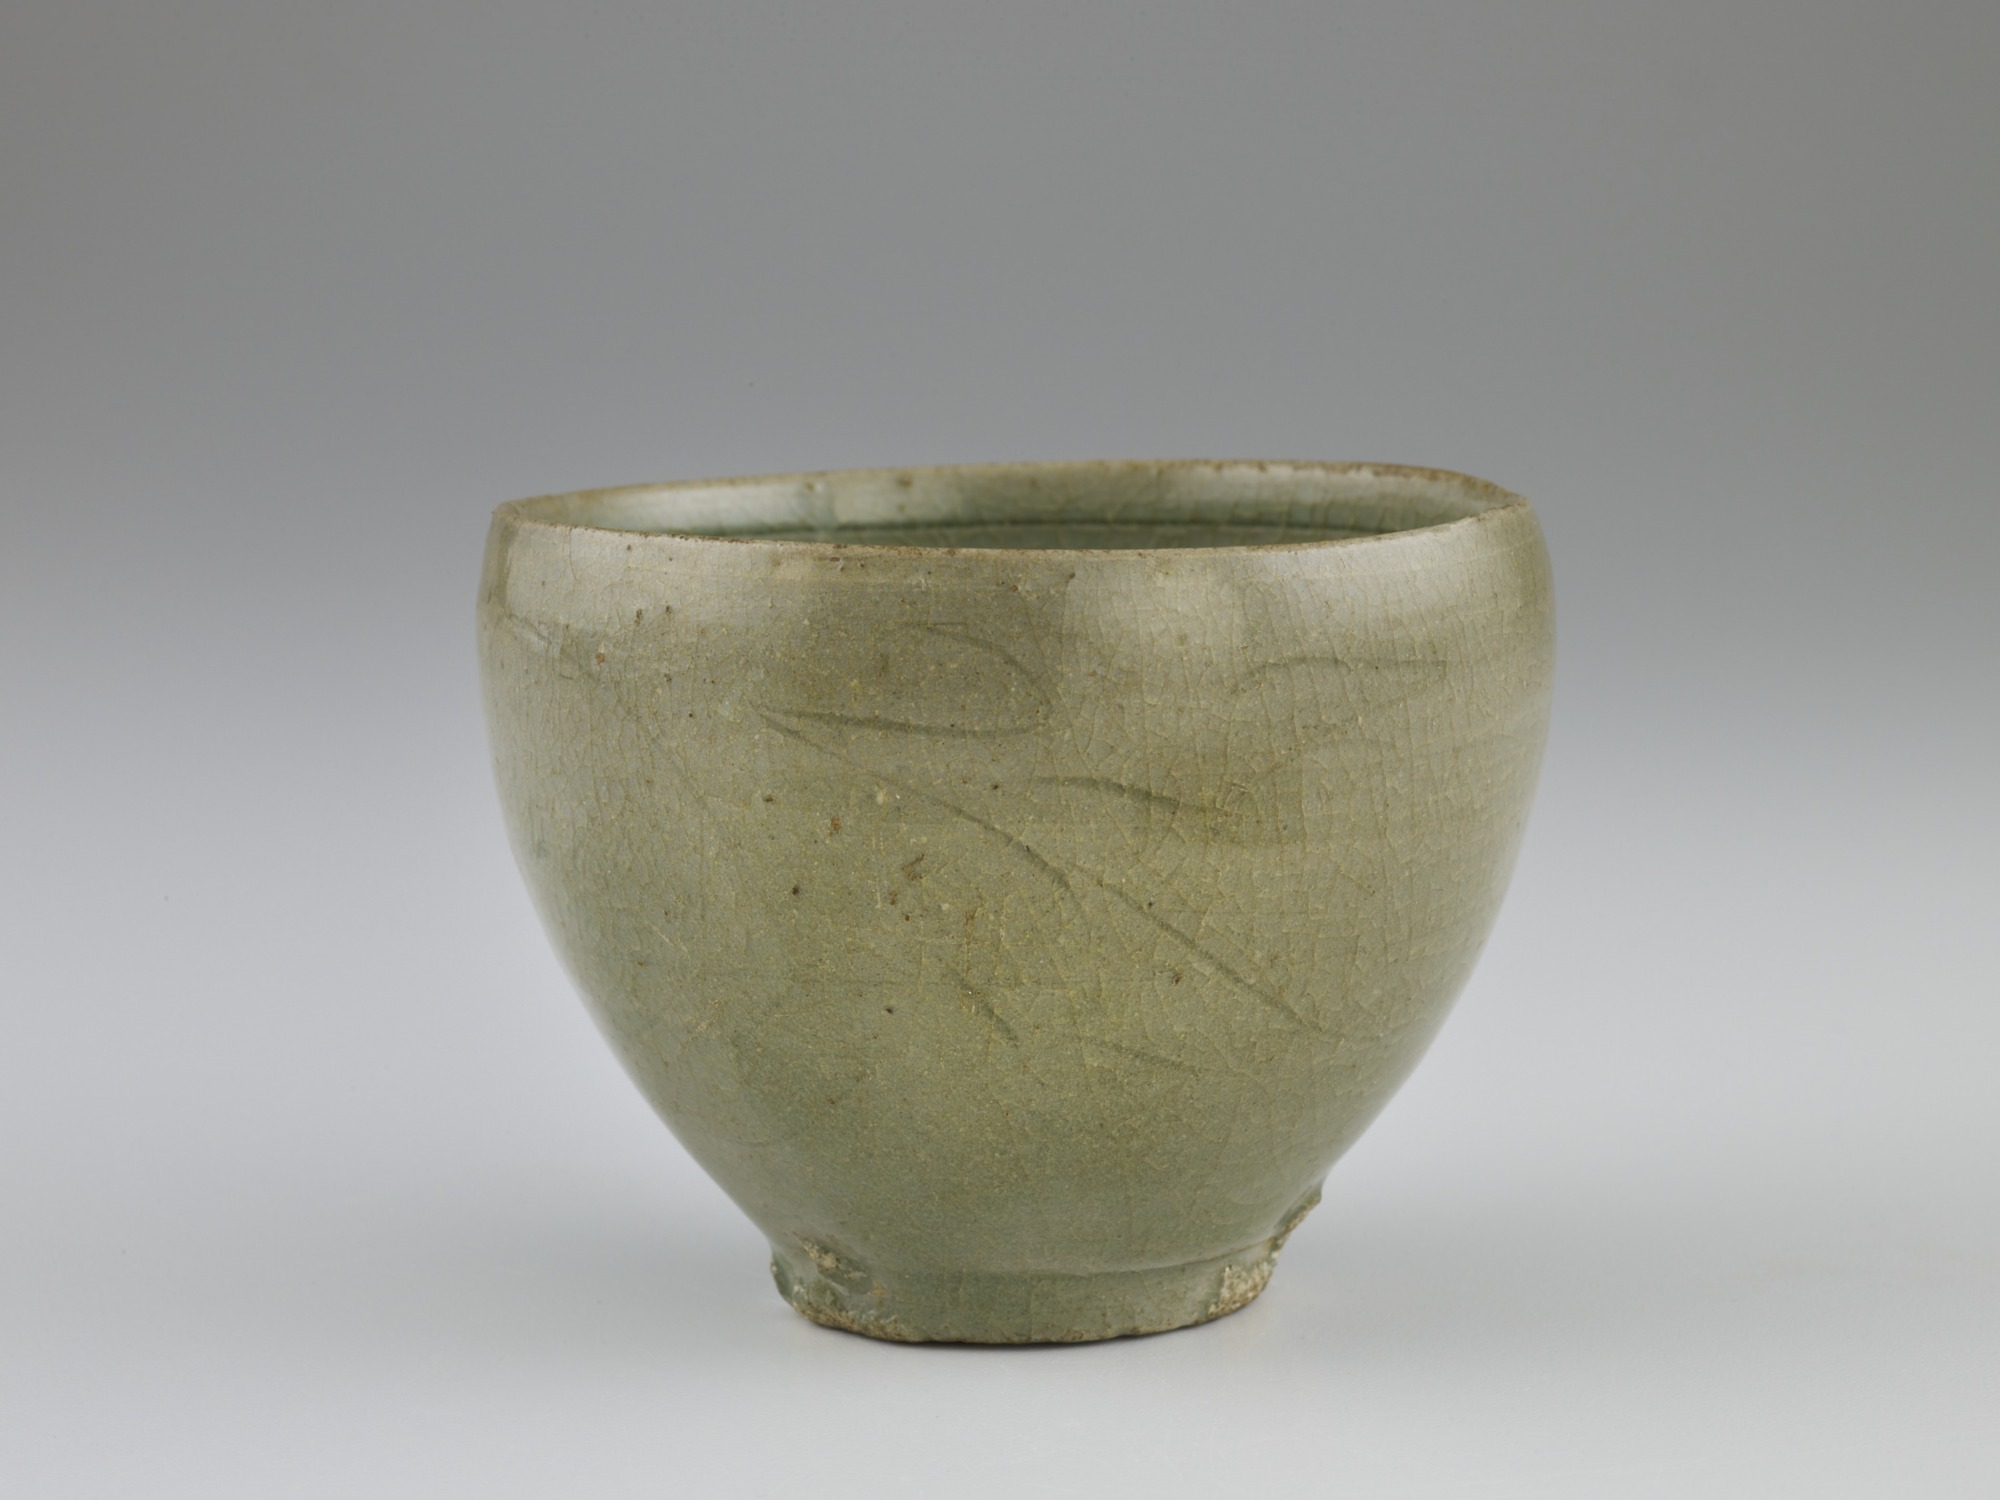 Cup with incised decoration, profile